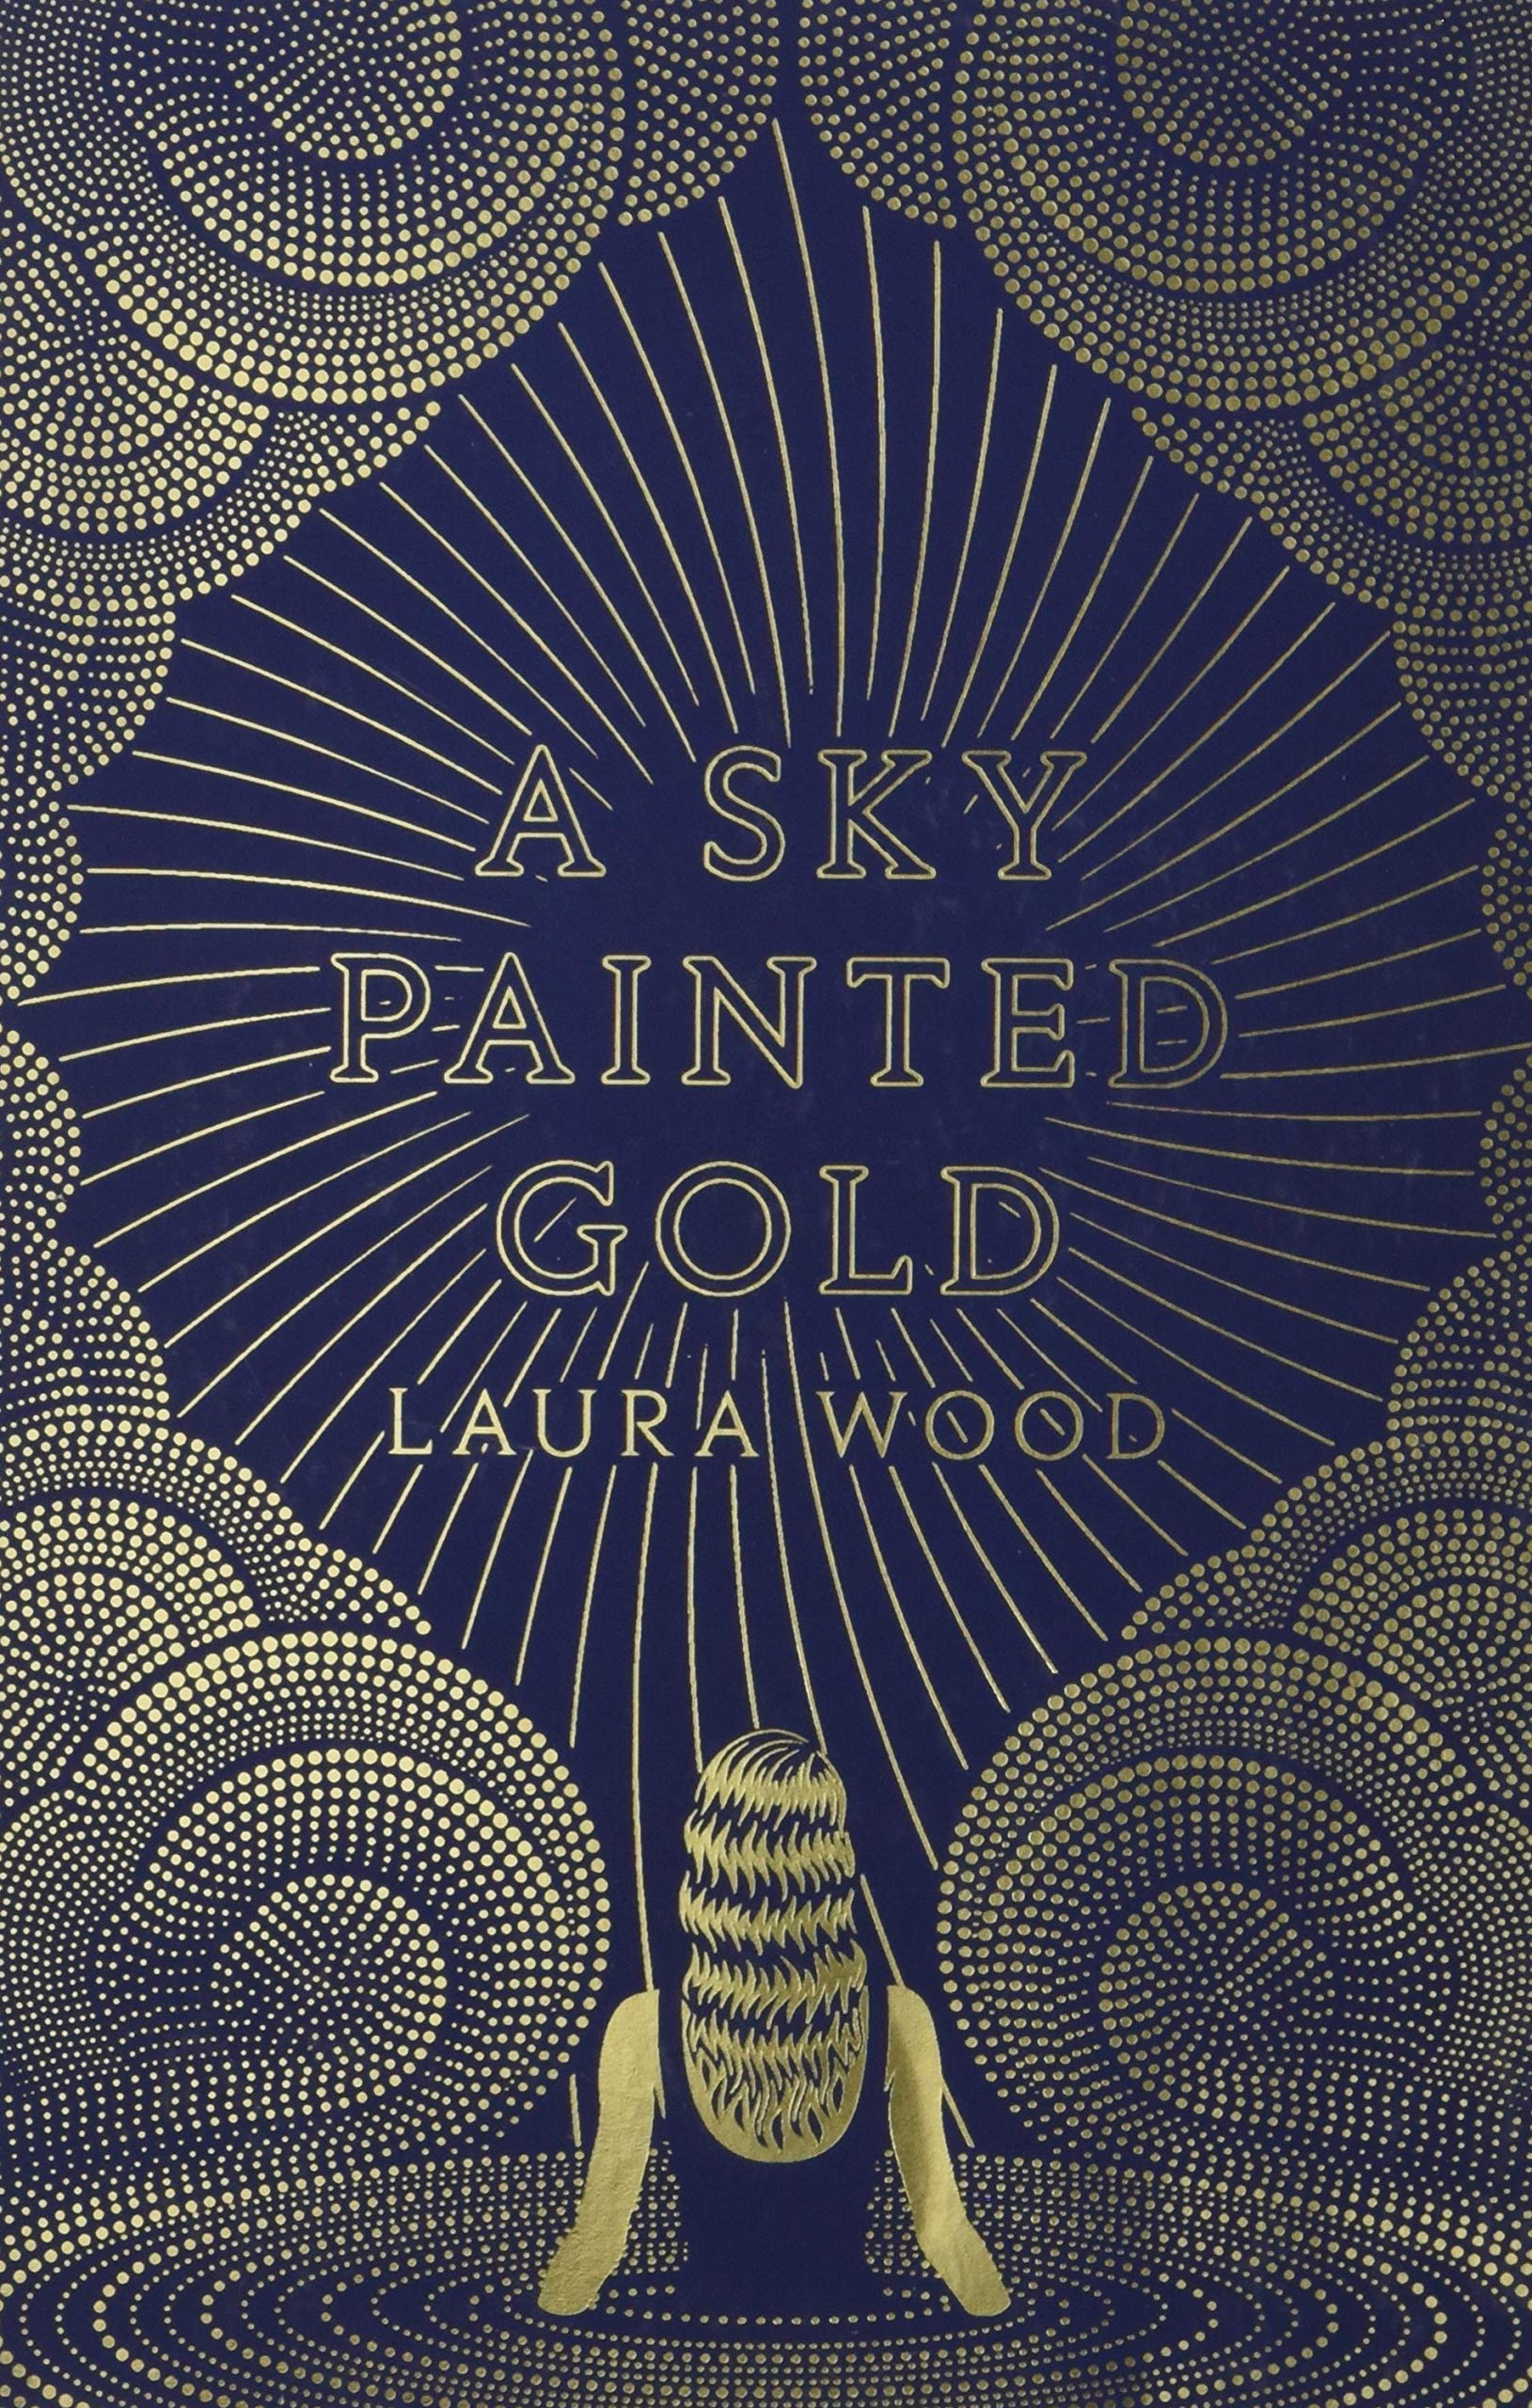 Image result for a sky painted gold laura wood